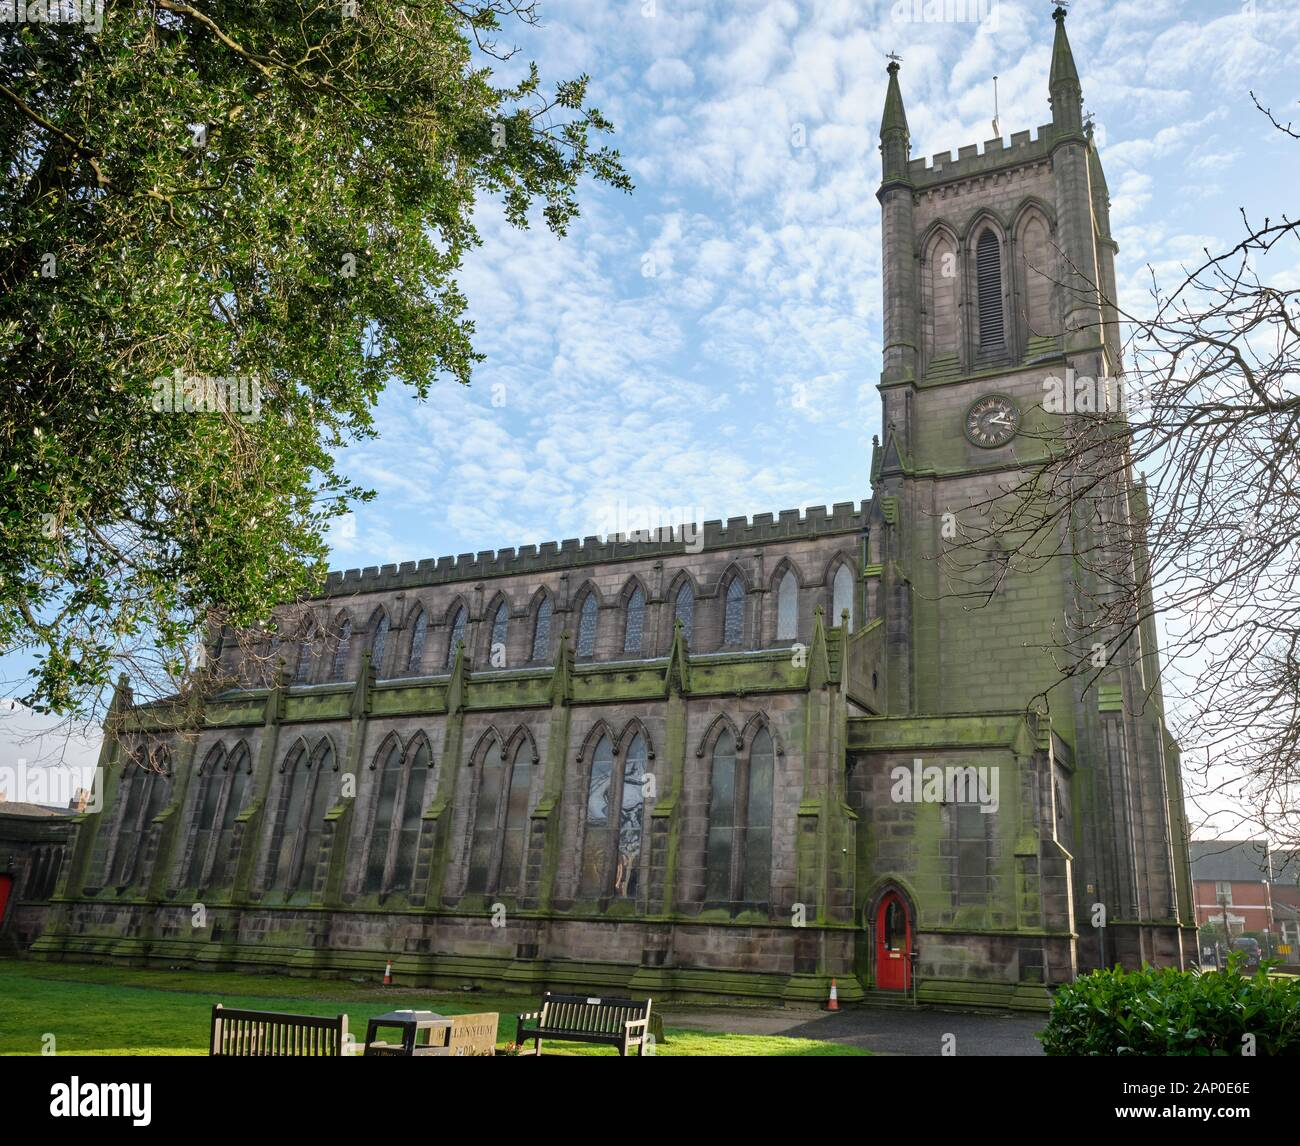 England Lancashire Chorley January 19 2020 St George S Anglican Church Chorley From The North Stock Photo Alamy